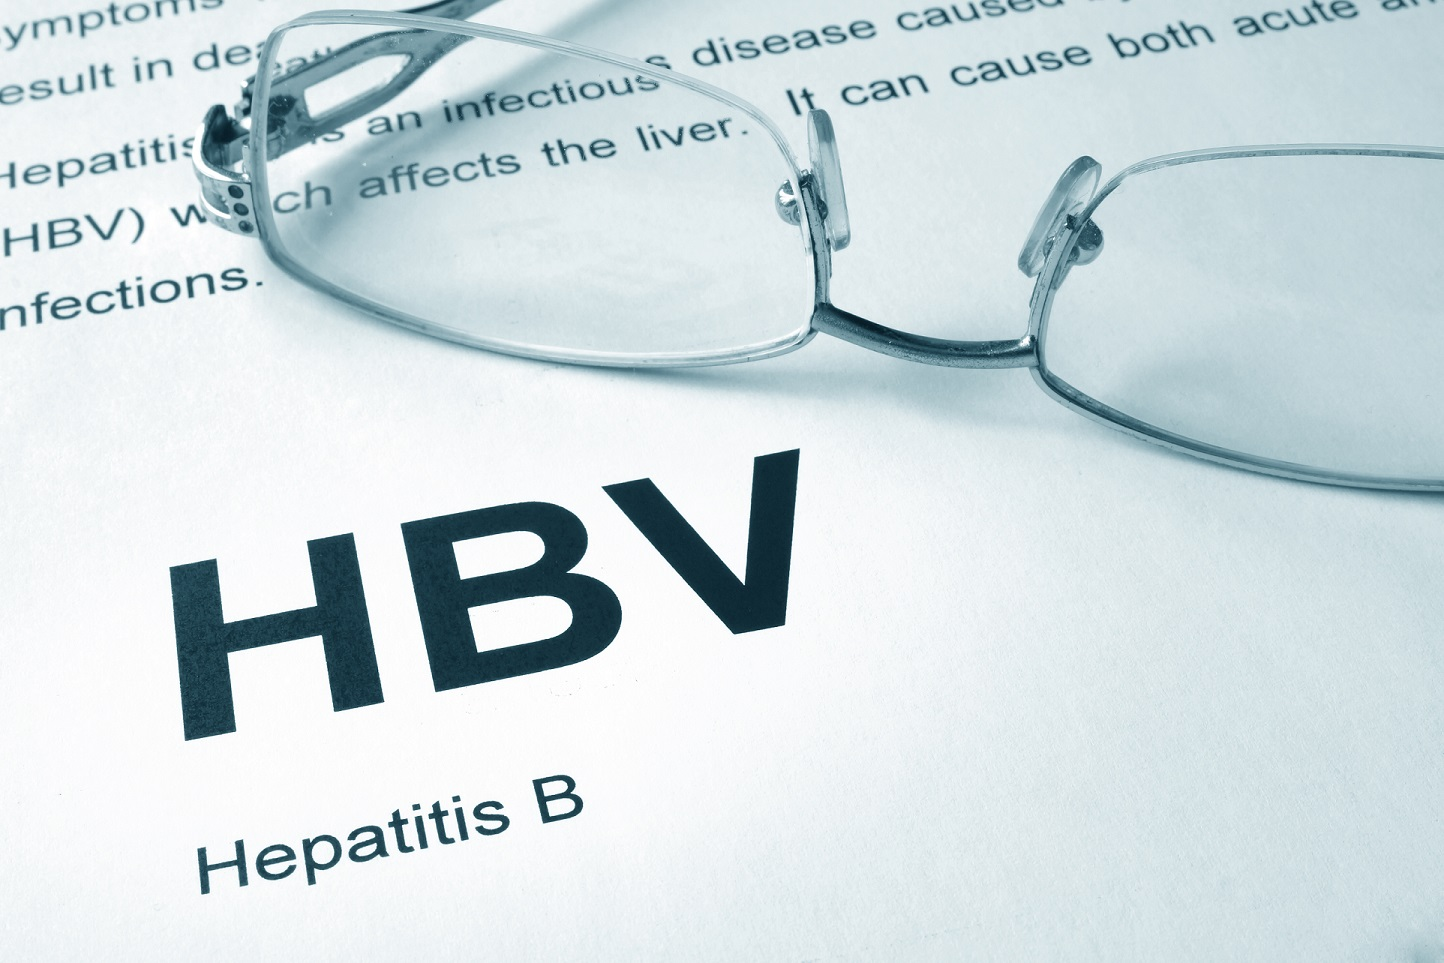 Whether to vaccinate against hepatitis 35